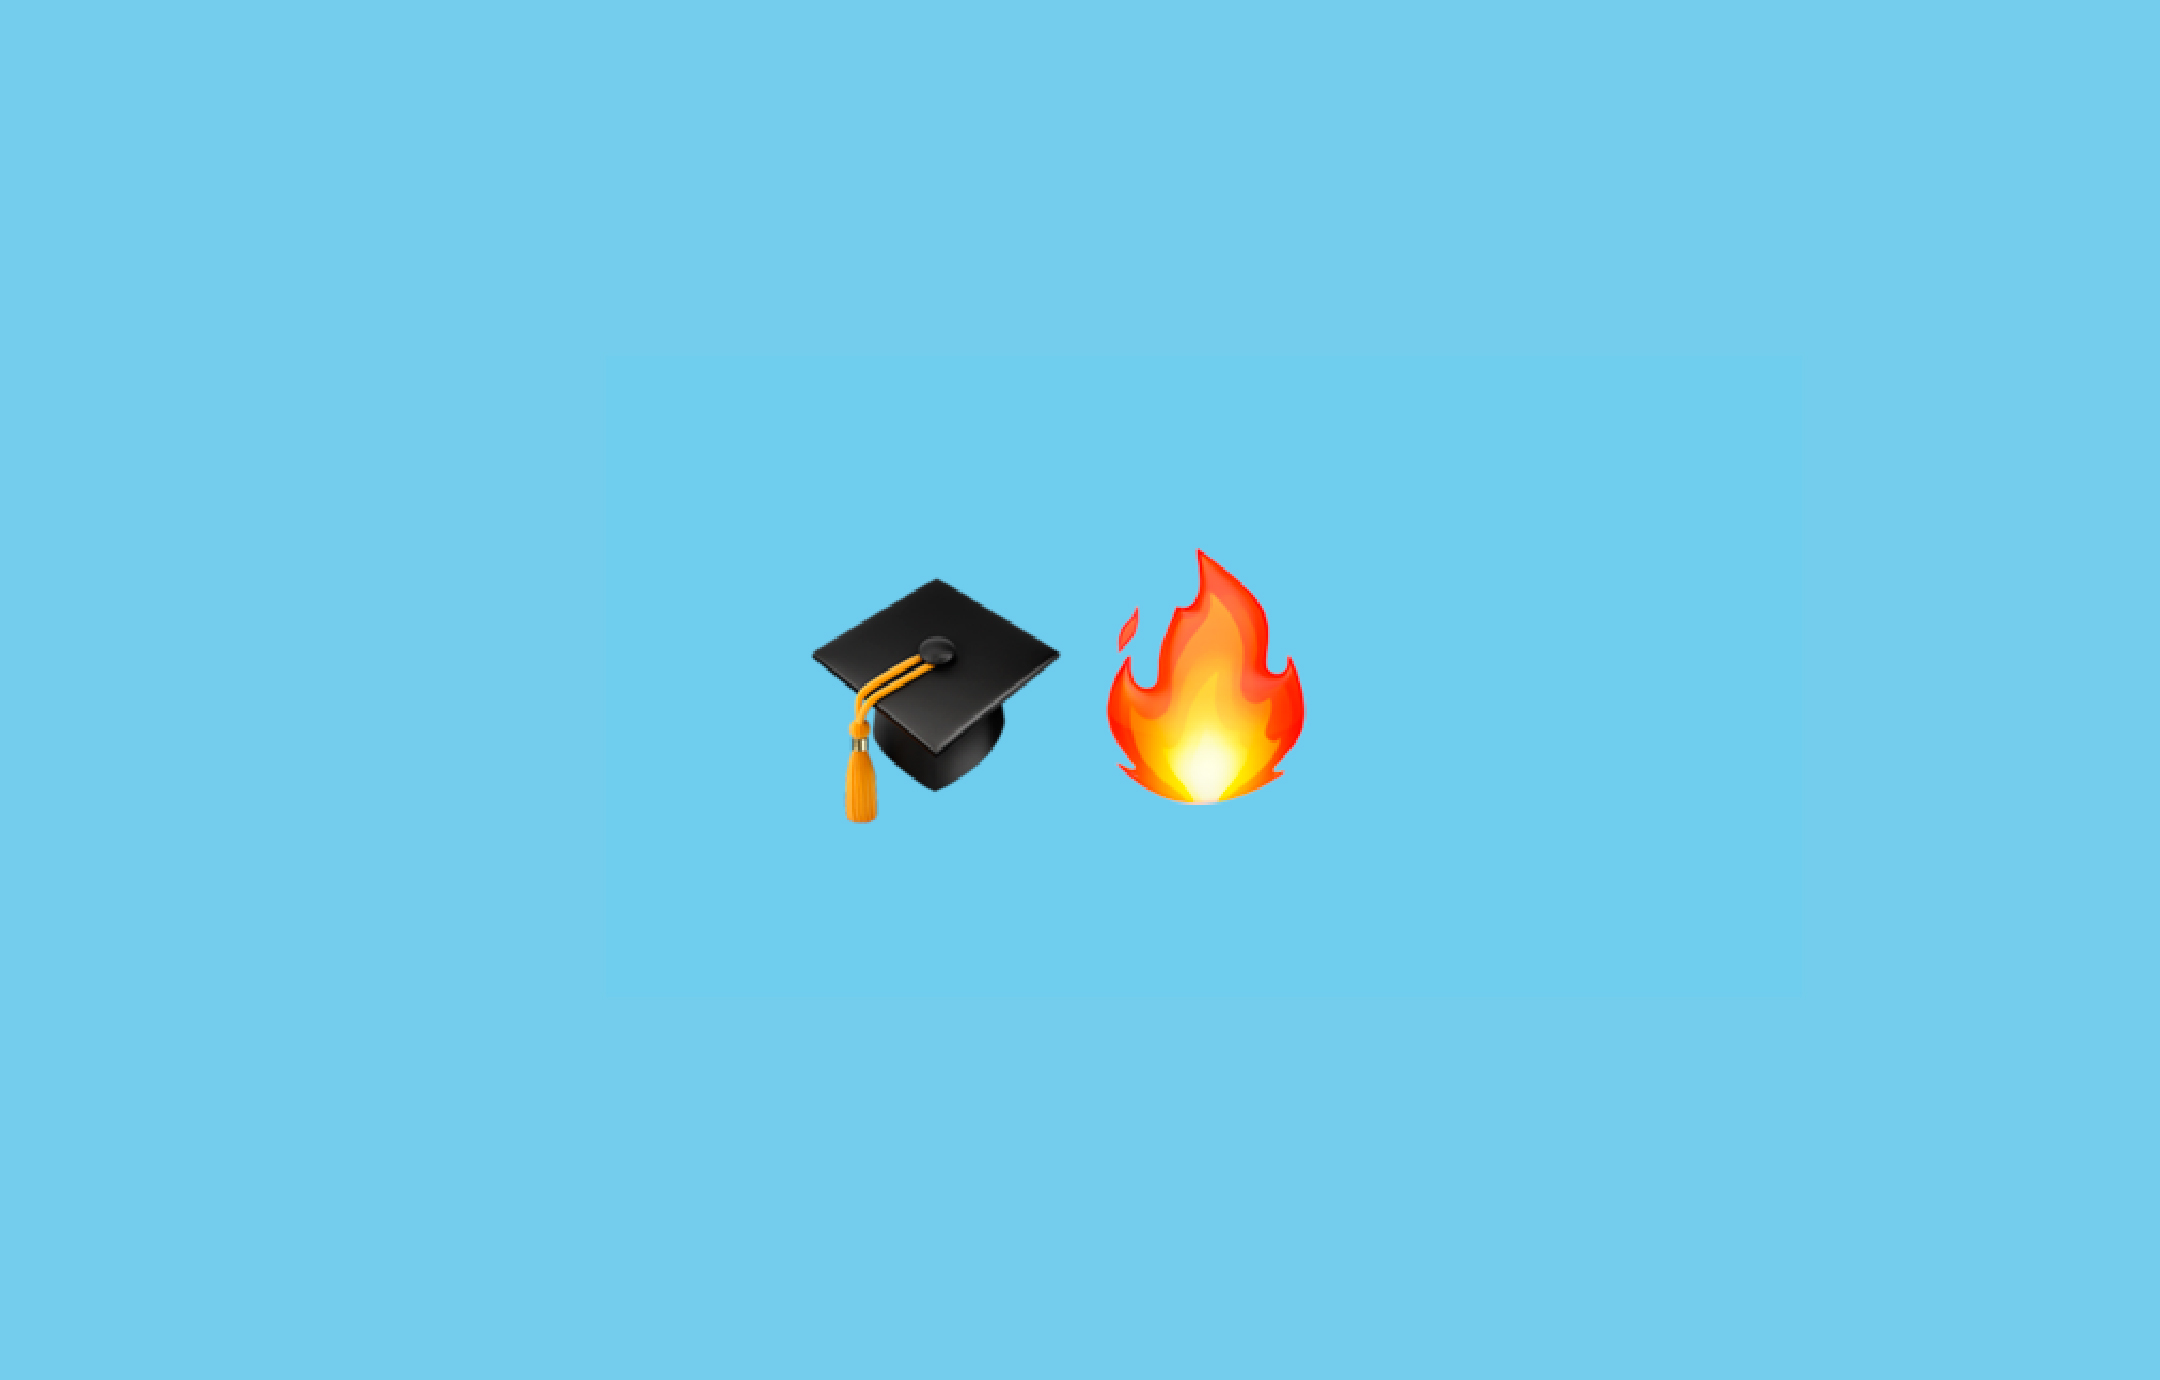 Graduation cap and fire emojis on a monochrome background